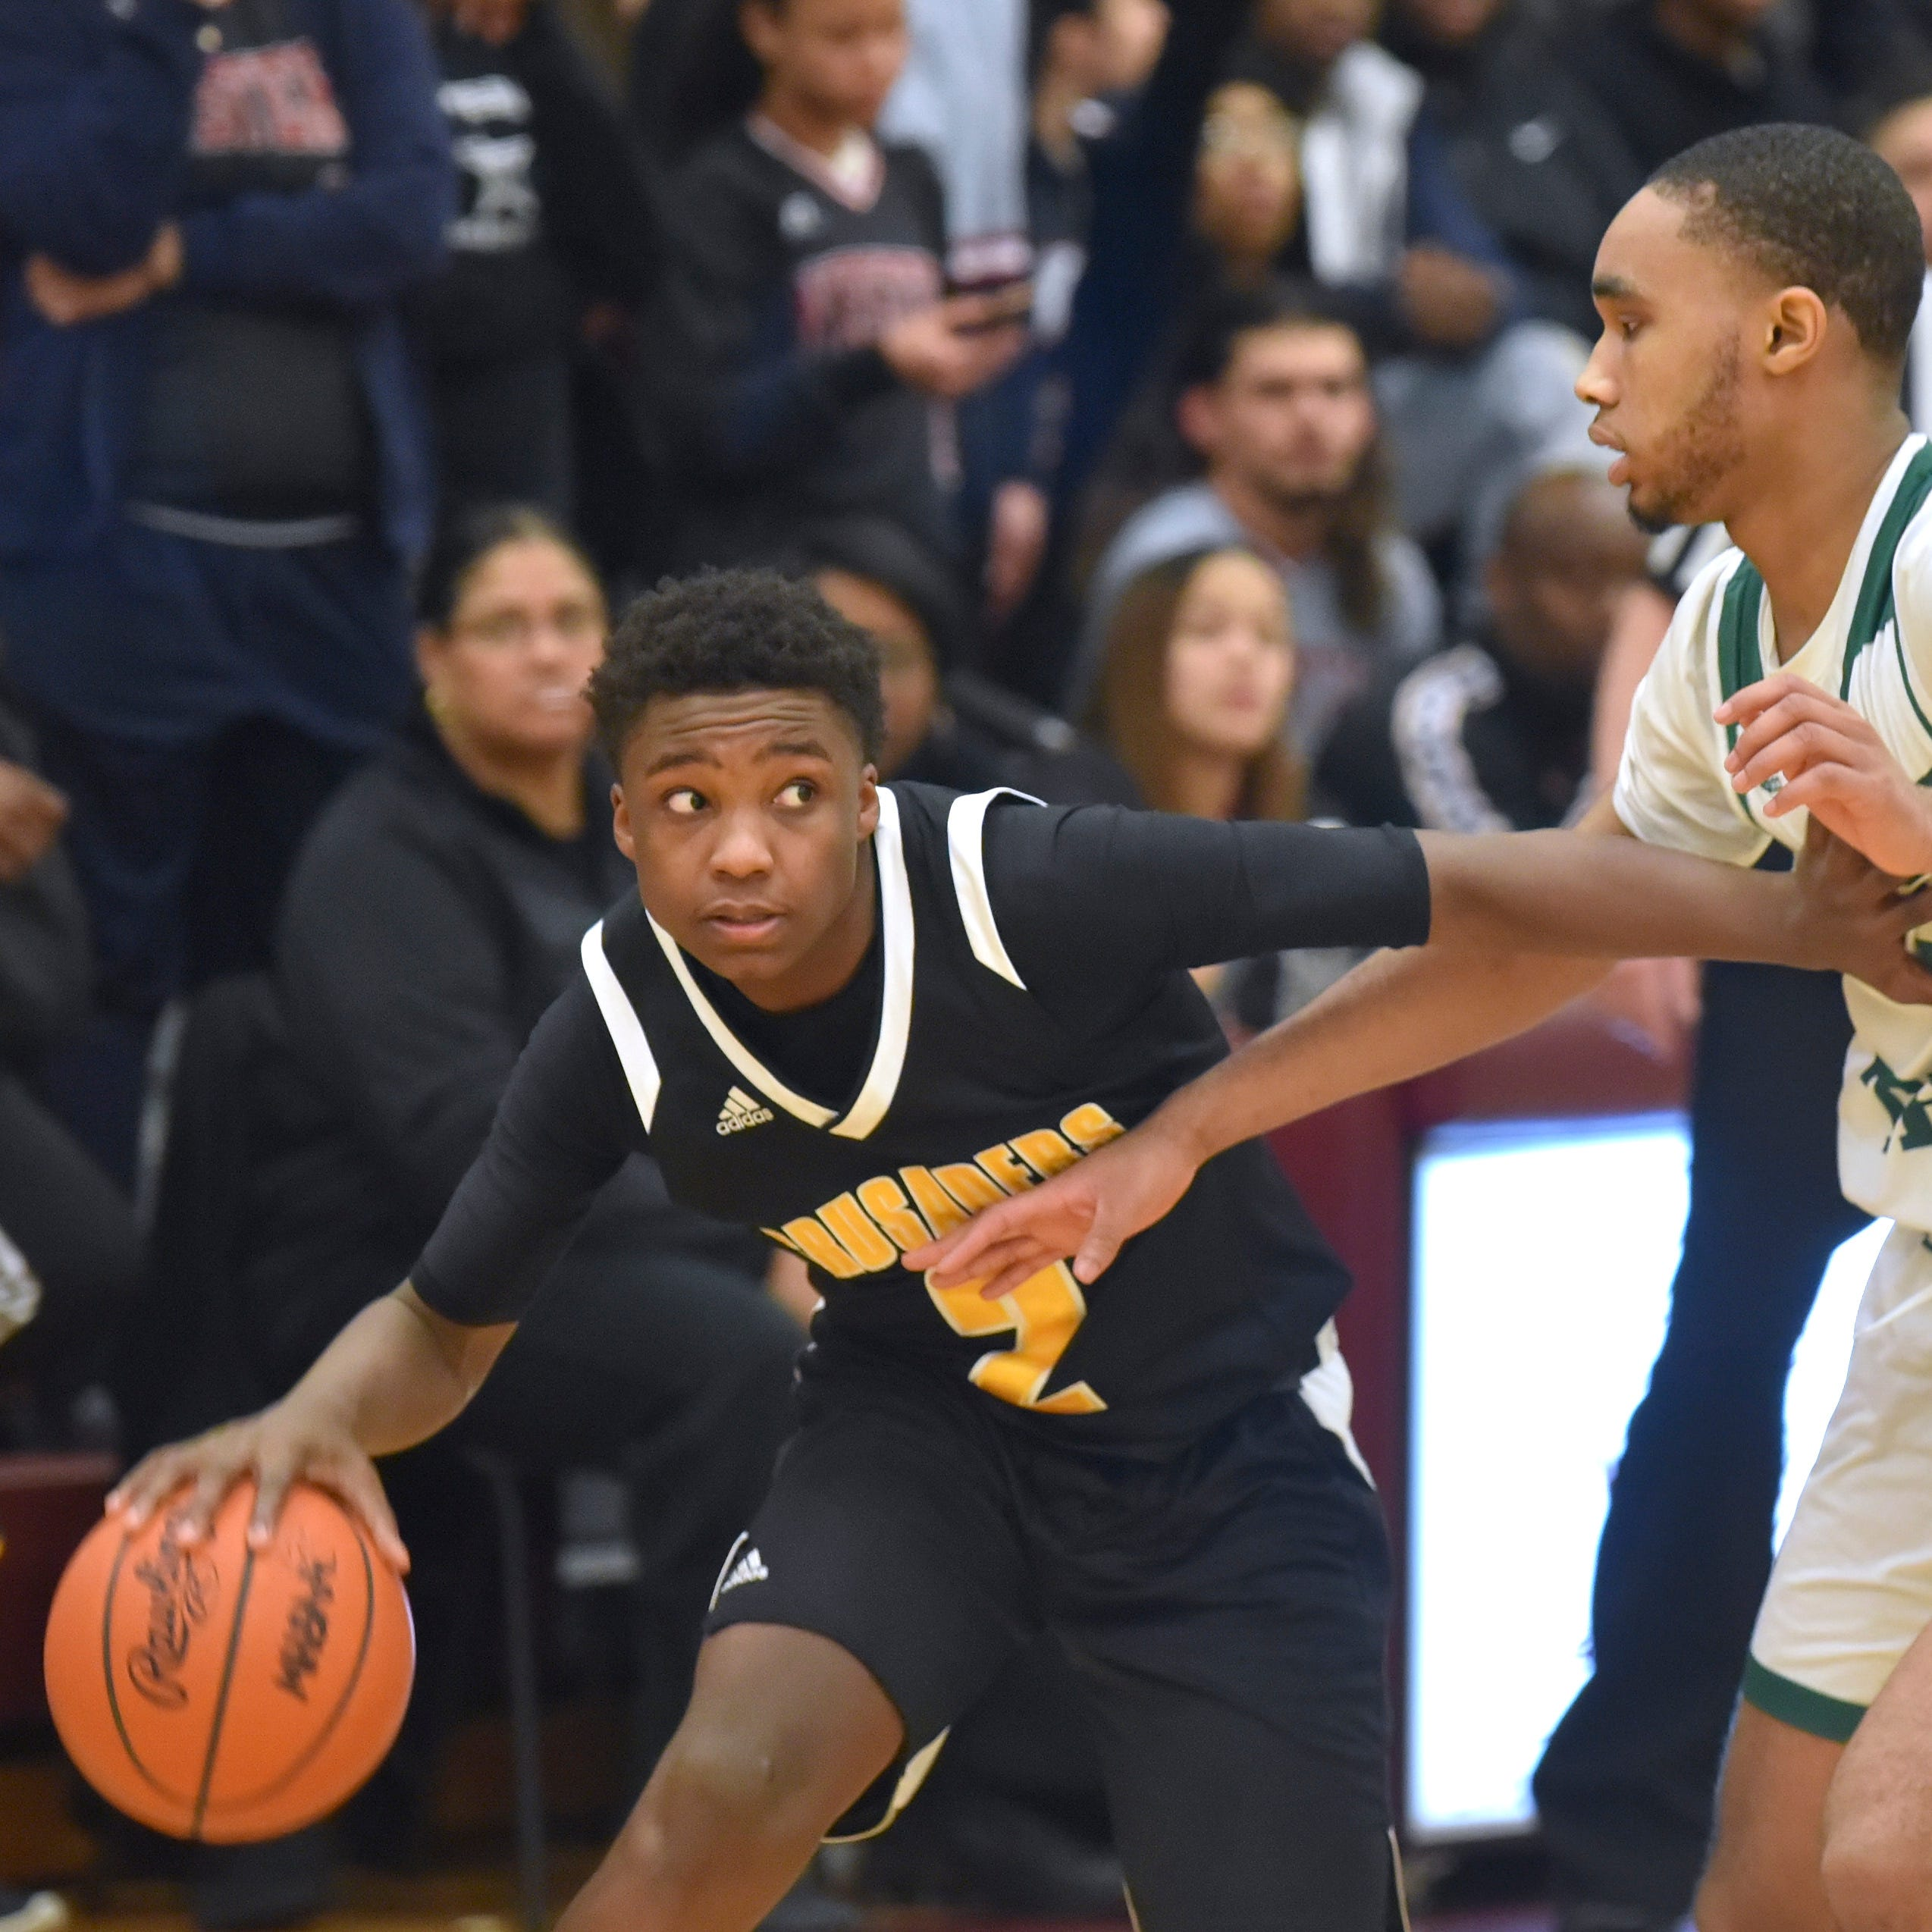 Boys basketball state tournament: Tuesday's regional semifinals schedule